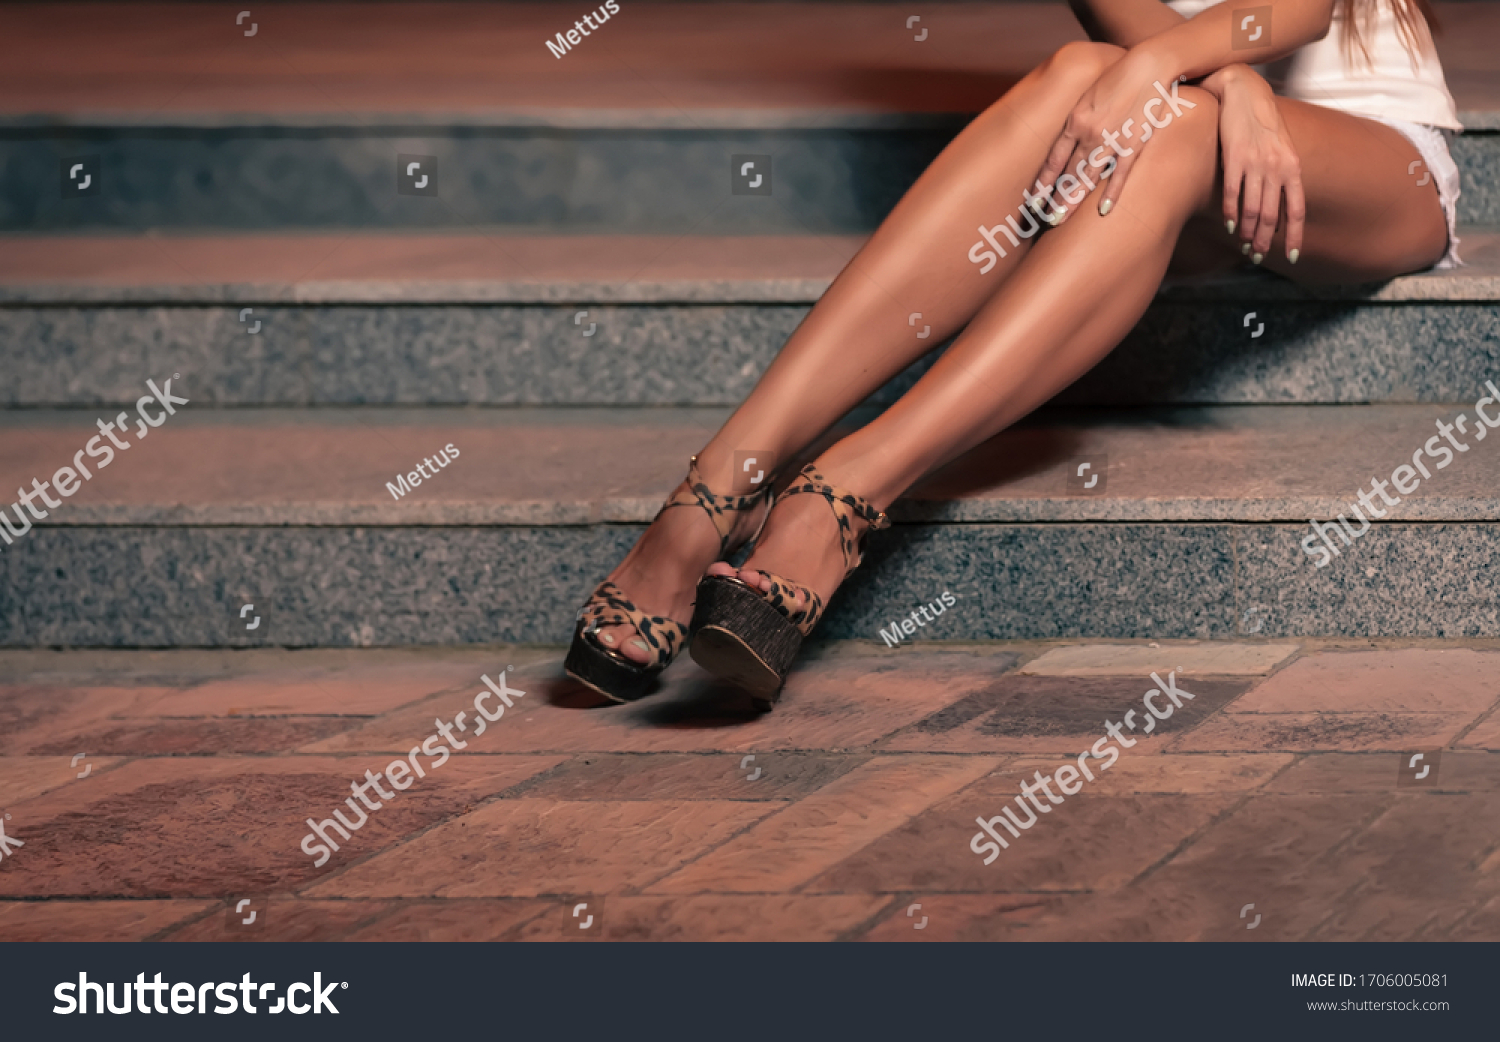 stock-photo-the-young-girl-sat-down-to-r